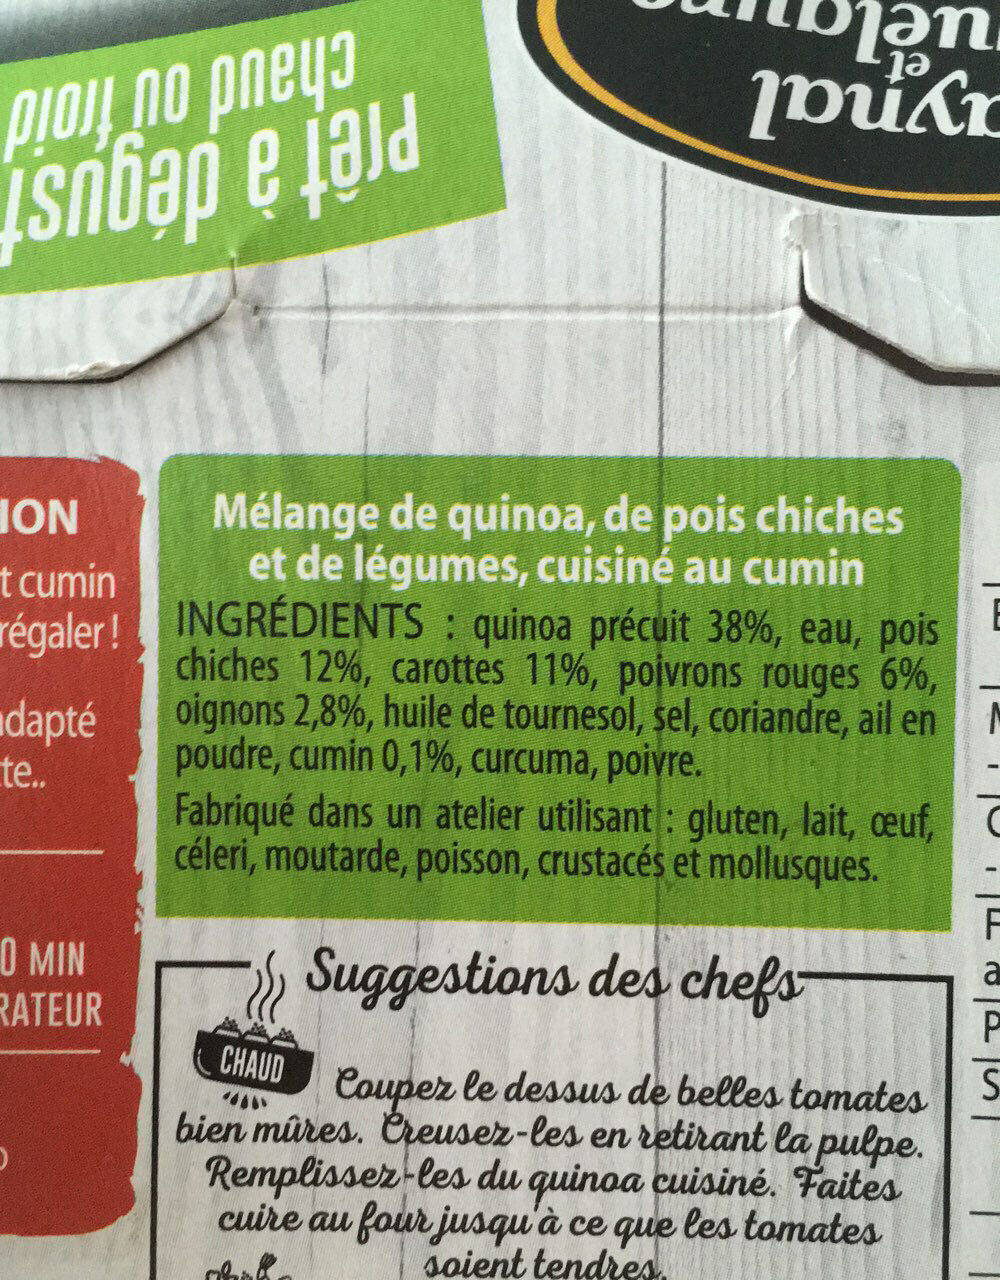 Quinoa cuisiné - Ingredients - fr